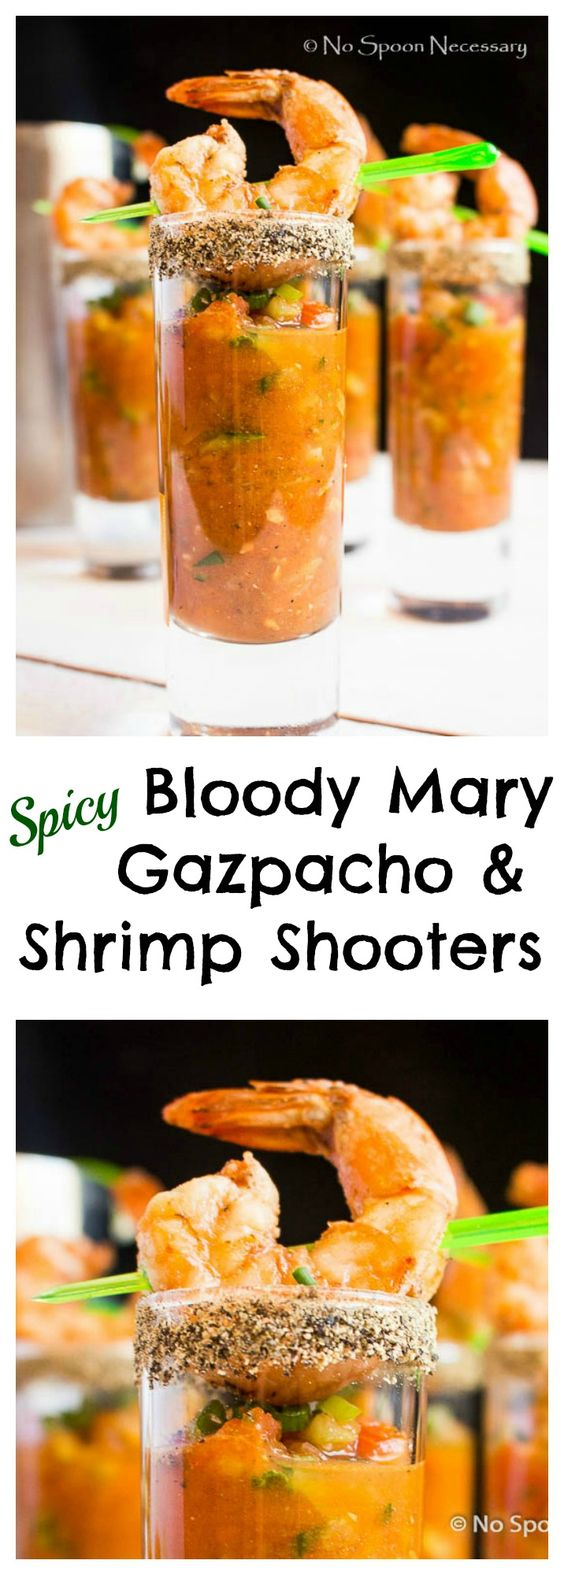 ... cats the o jays cats meowing shrimp world gazpacho spicy bloody mary